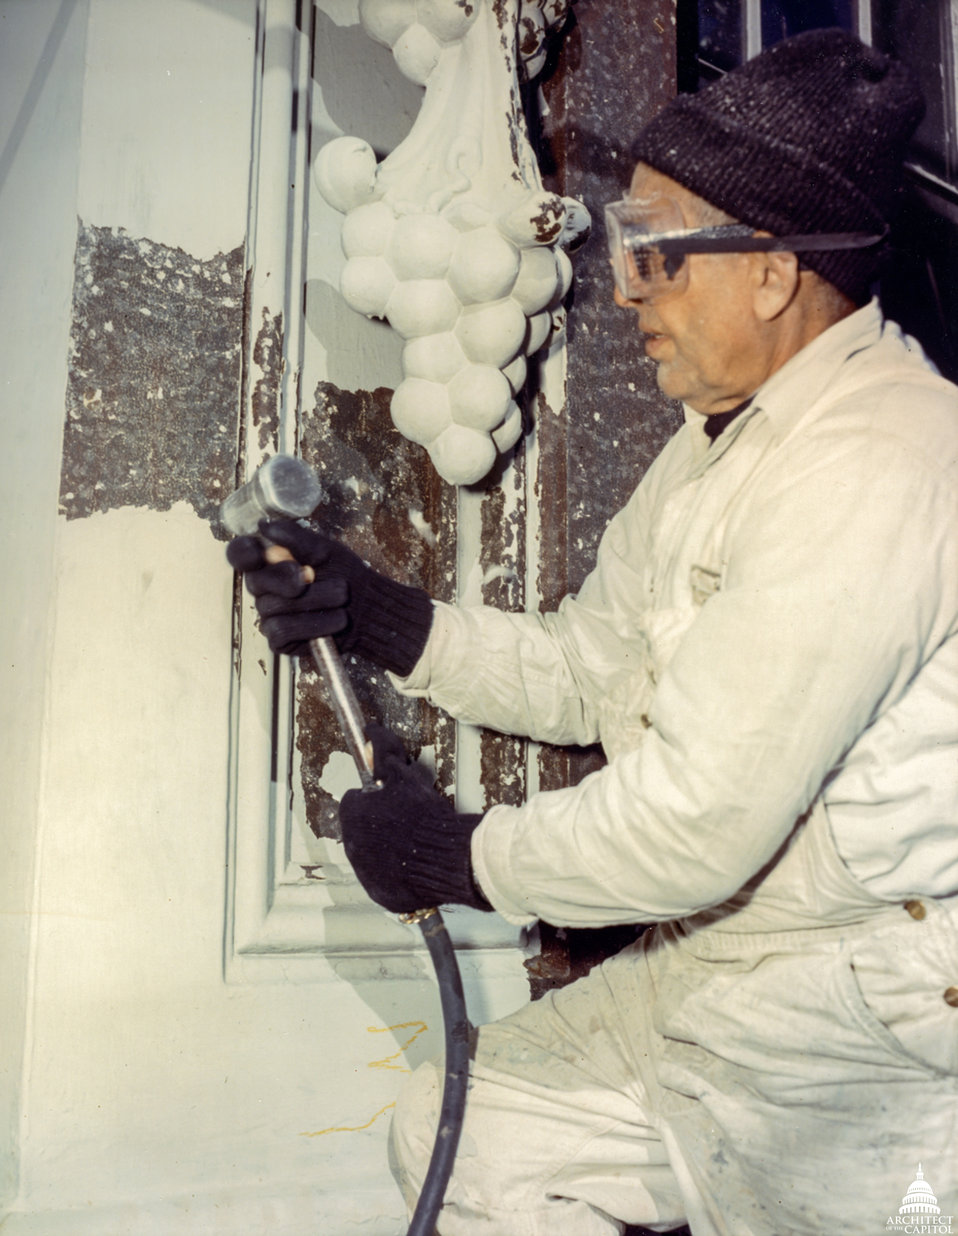 Workman conducting repairs on Dome 1960